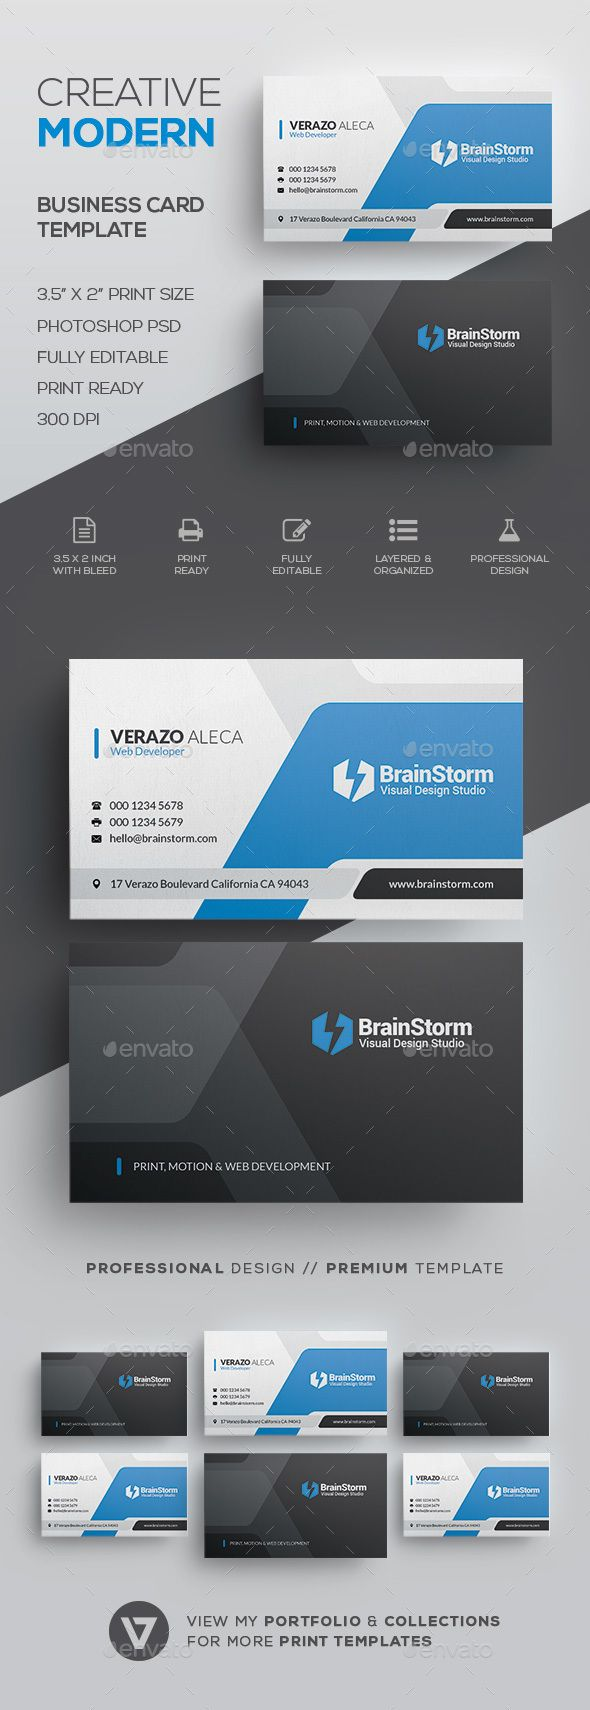 Creative Corporate Business Card Template - Corporate Business Cards Download here: https://graphicriver.net/item/creative-corporate-business-card-template/19853197?https://graphicriver.net/item/business-card/19853565?ref=classicdesignp